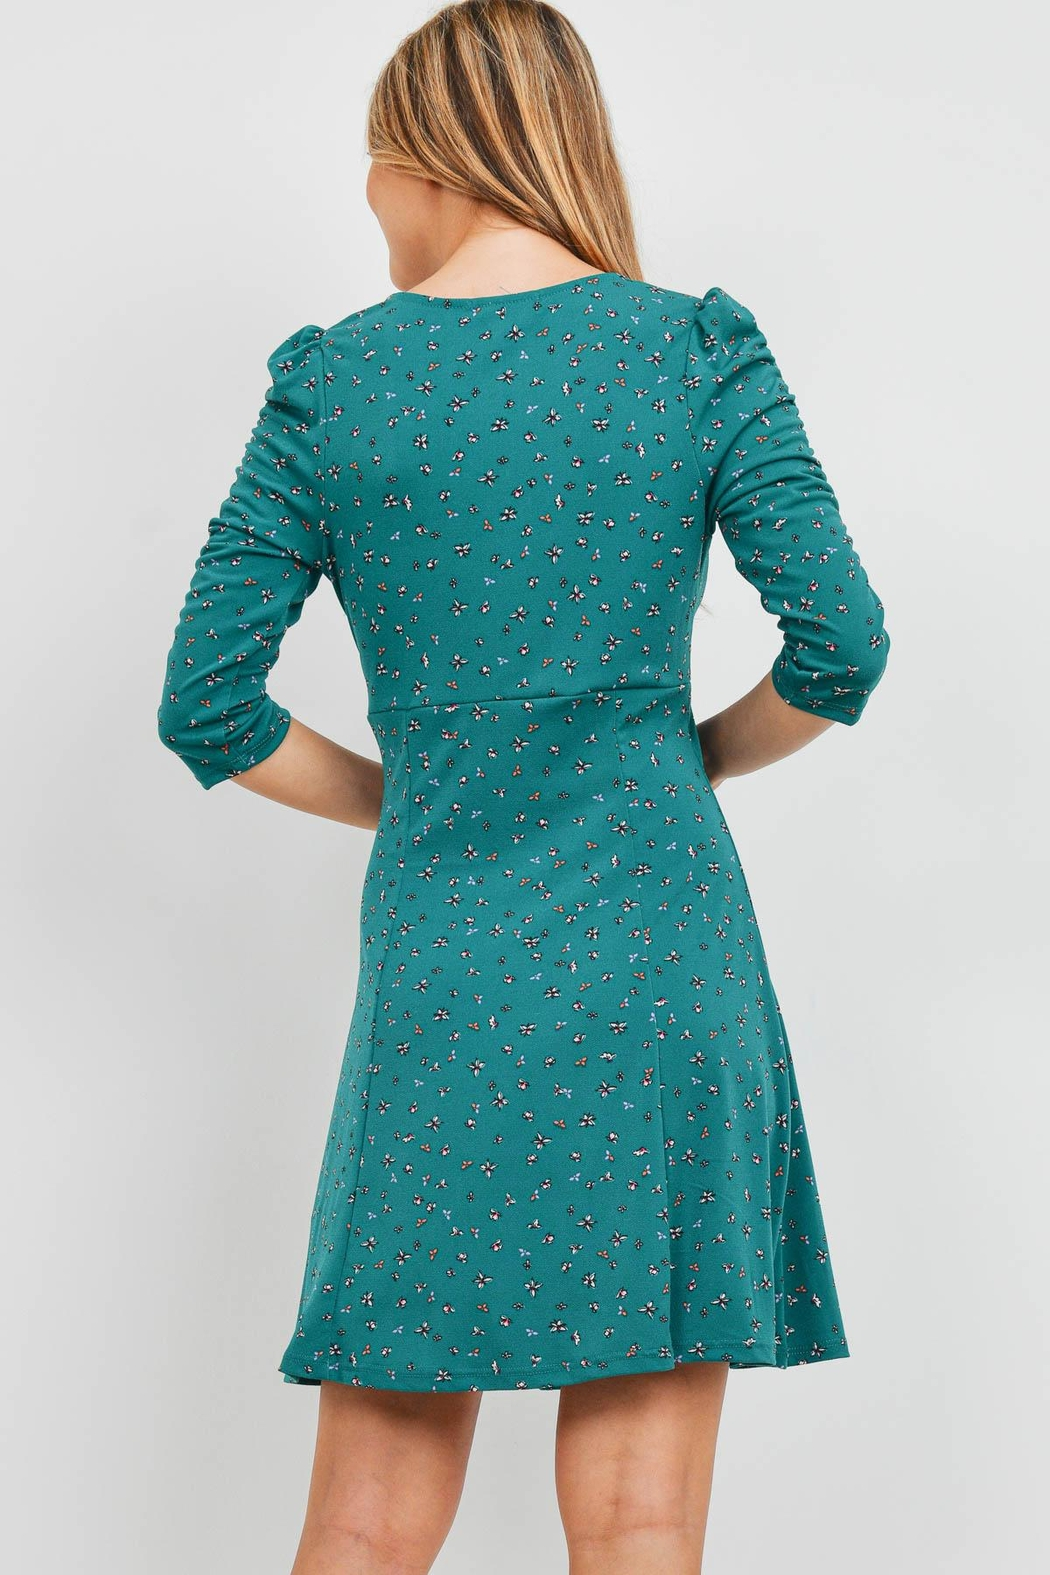 Riah Fashion Forest Green Dress - Front Full Image